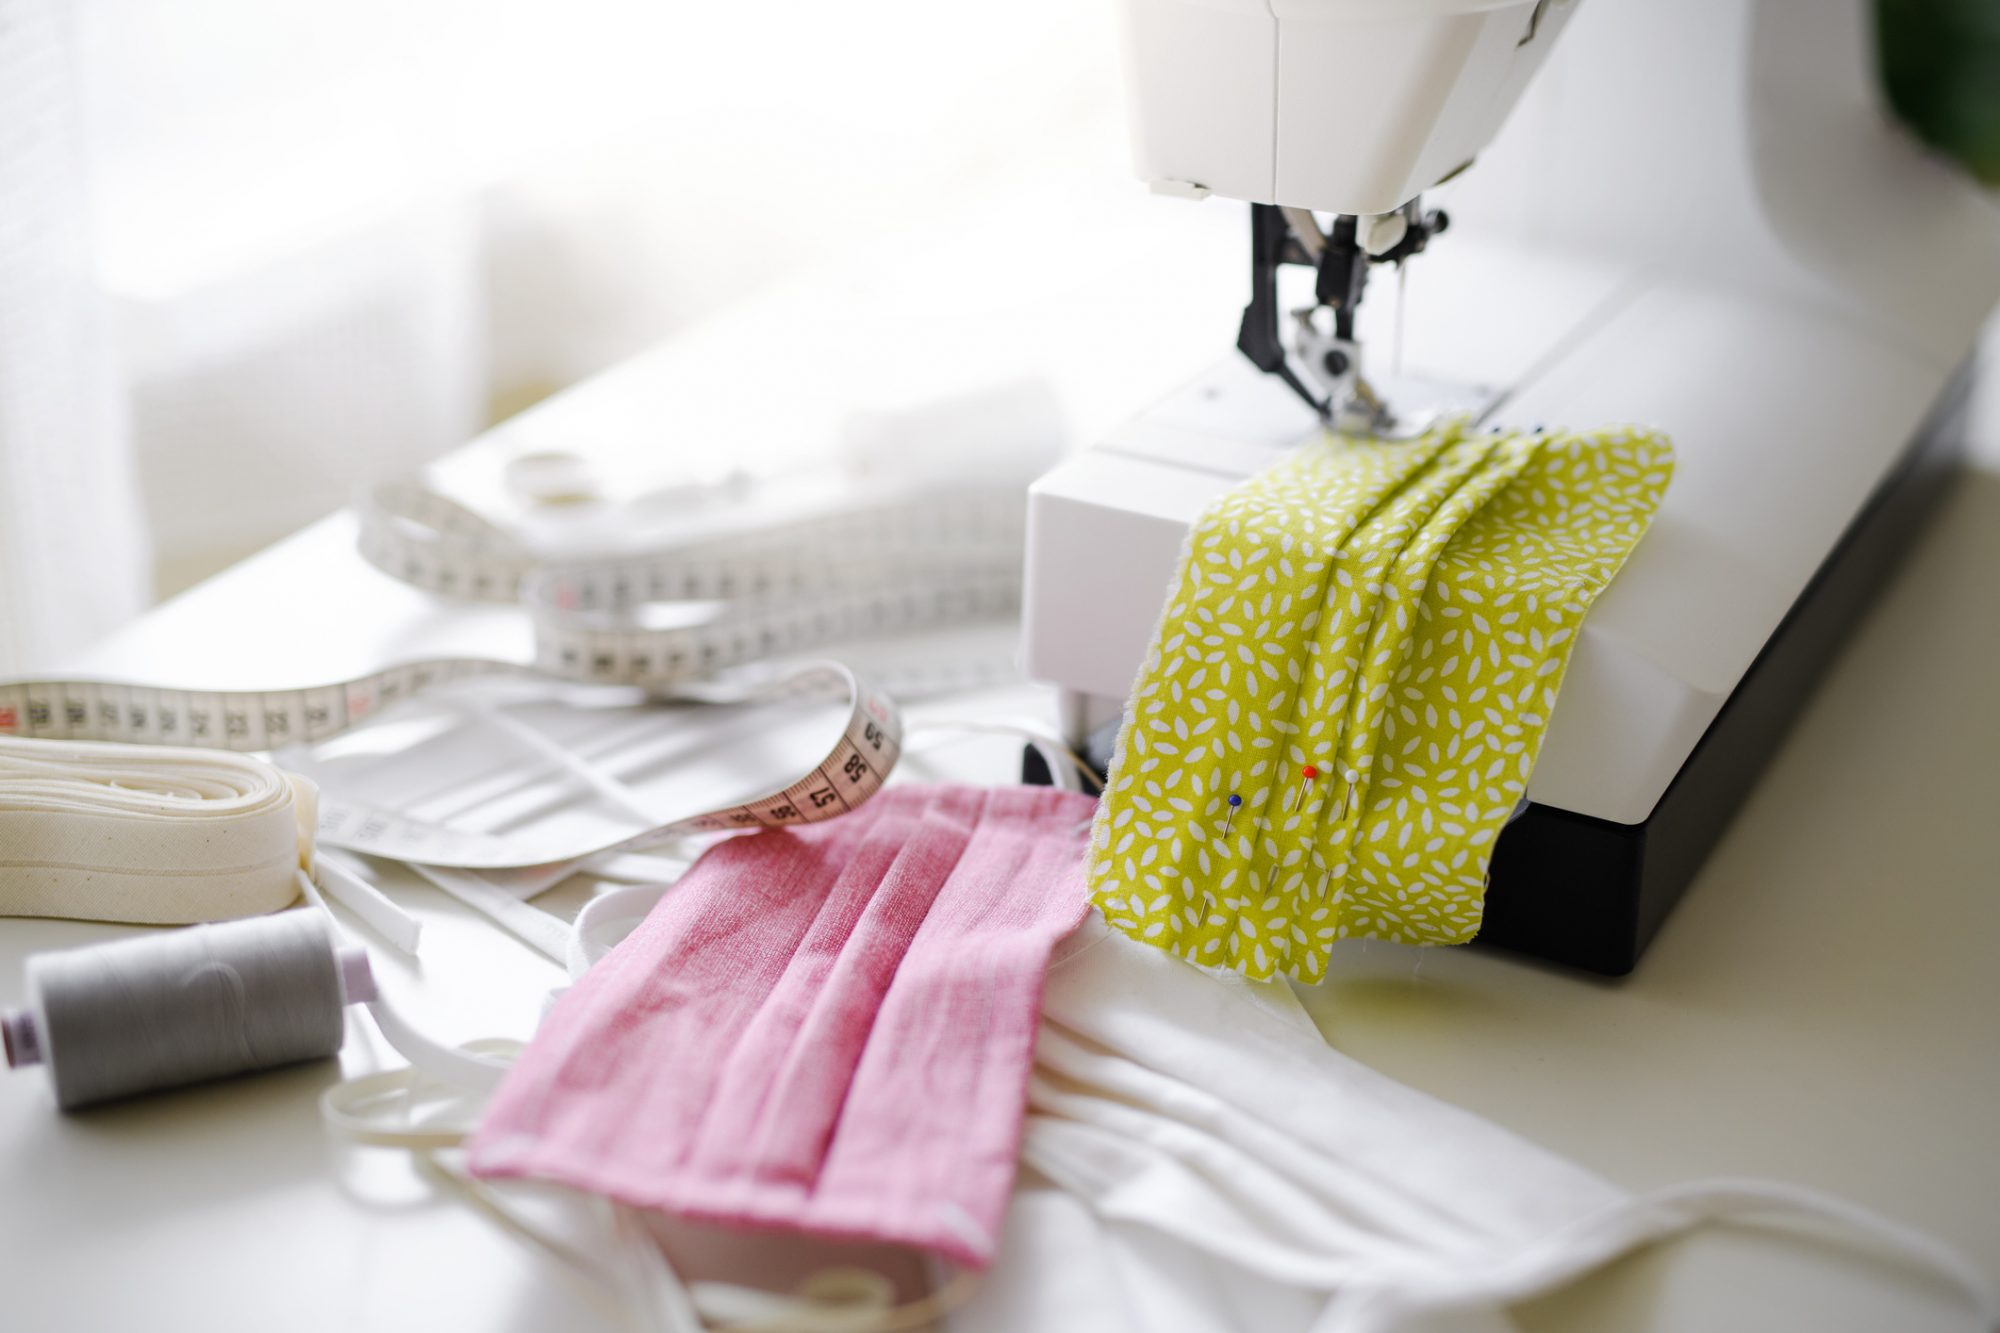 protective face masks on sewing machine